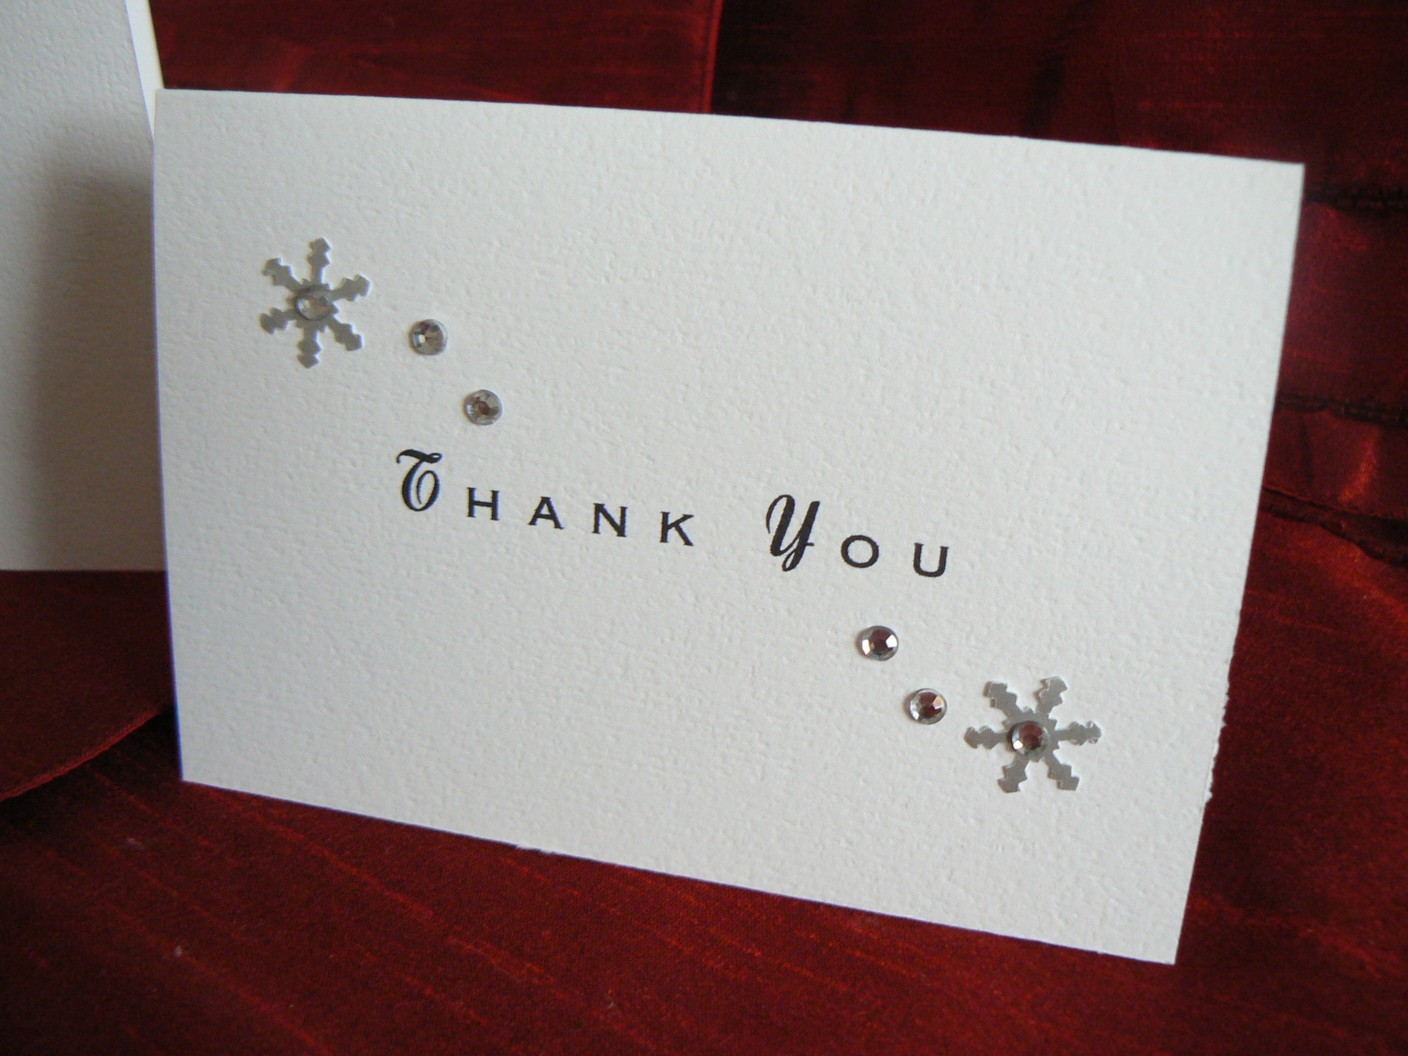 Stationery, white, silver, invitation, Winter, Invitations, Thank You Notes, Wedding, Card, You, Thank, Snowflakes, Crystals, Rhinestones, Embellishment, Fanfare handmade invitations social stationery